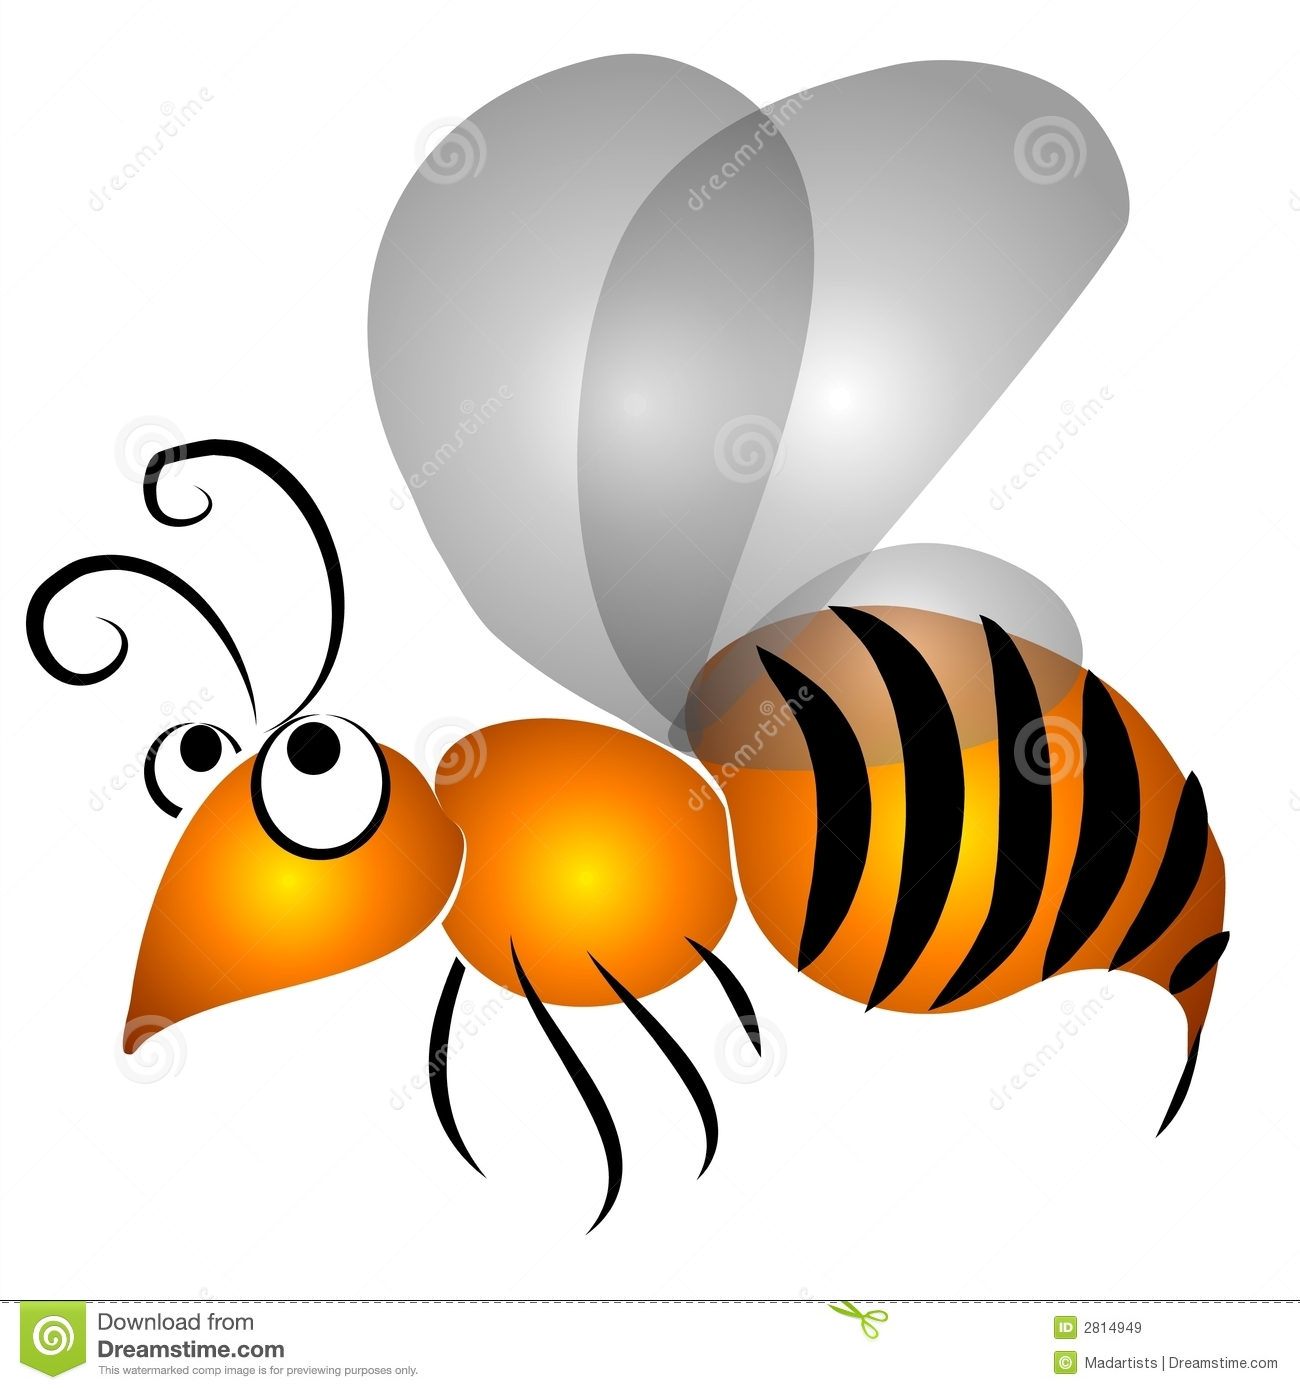 Wasp clipart #1, Download drawings